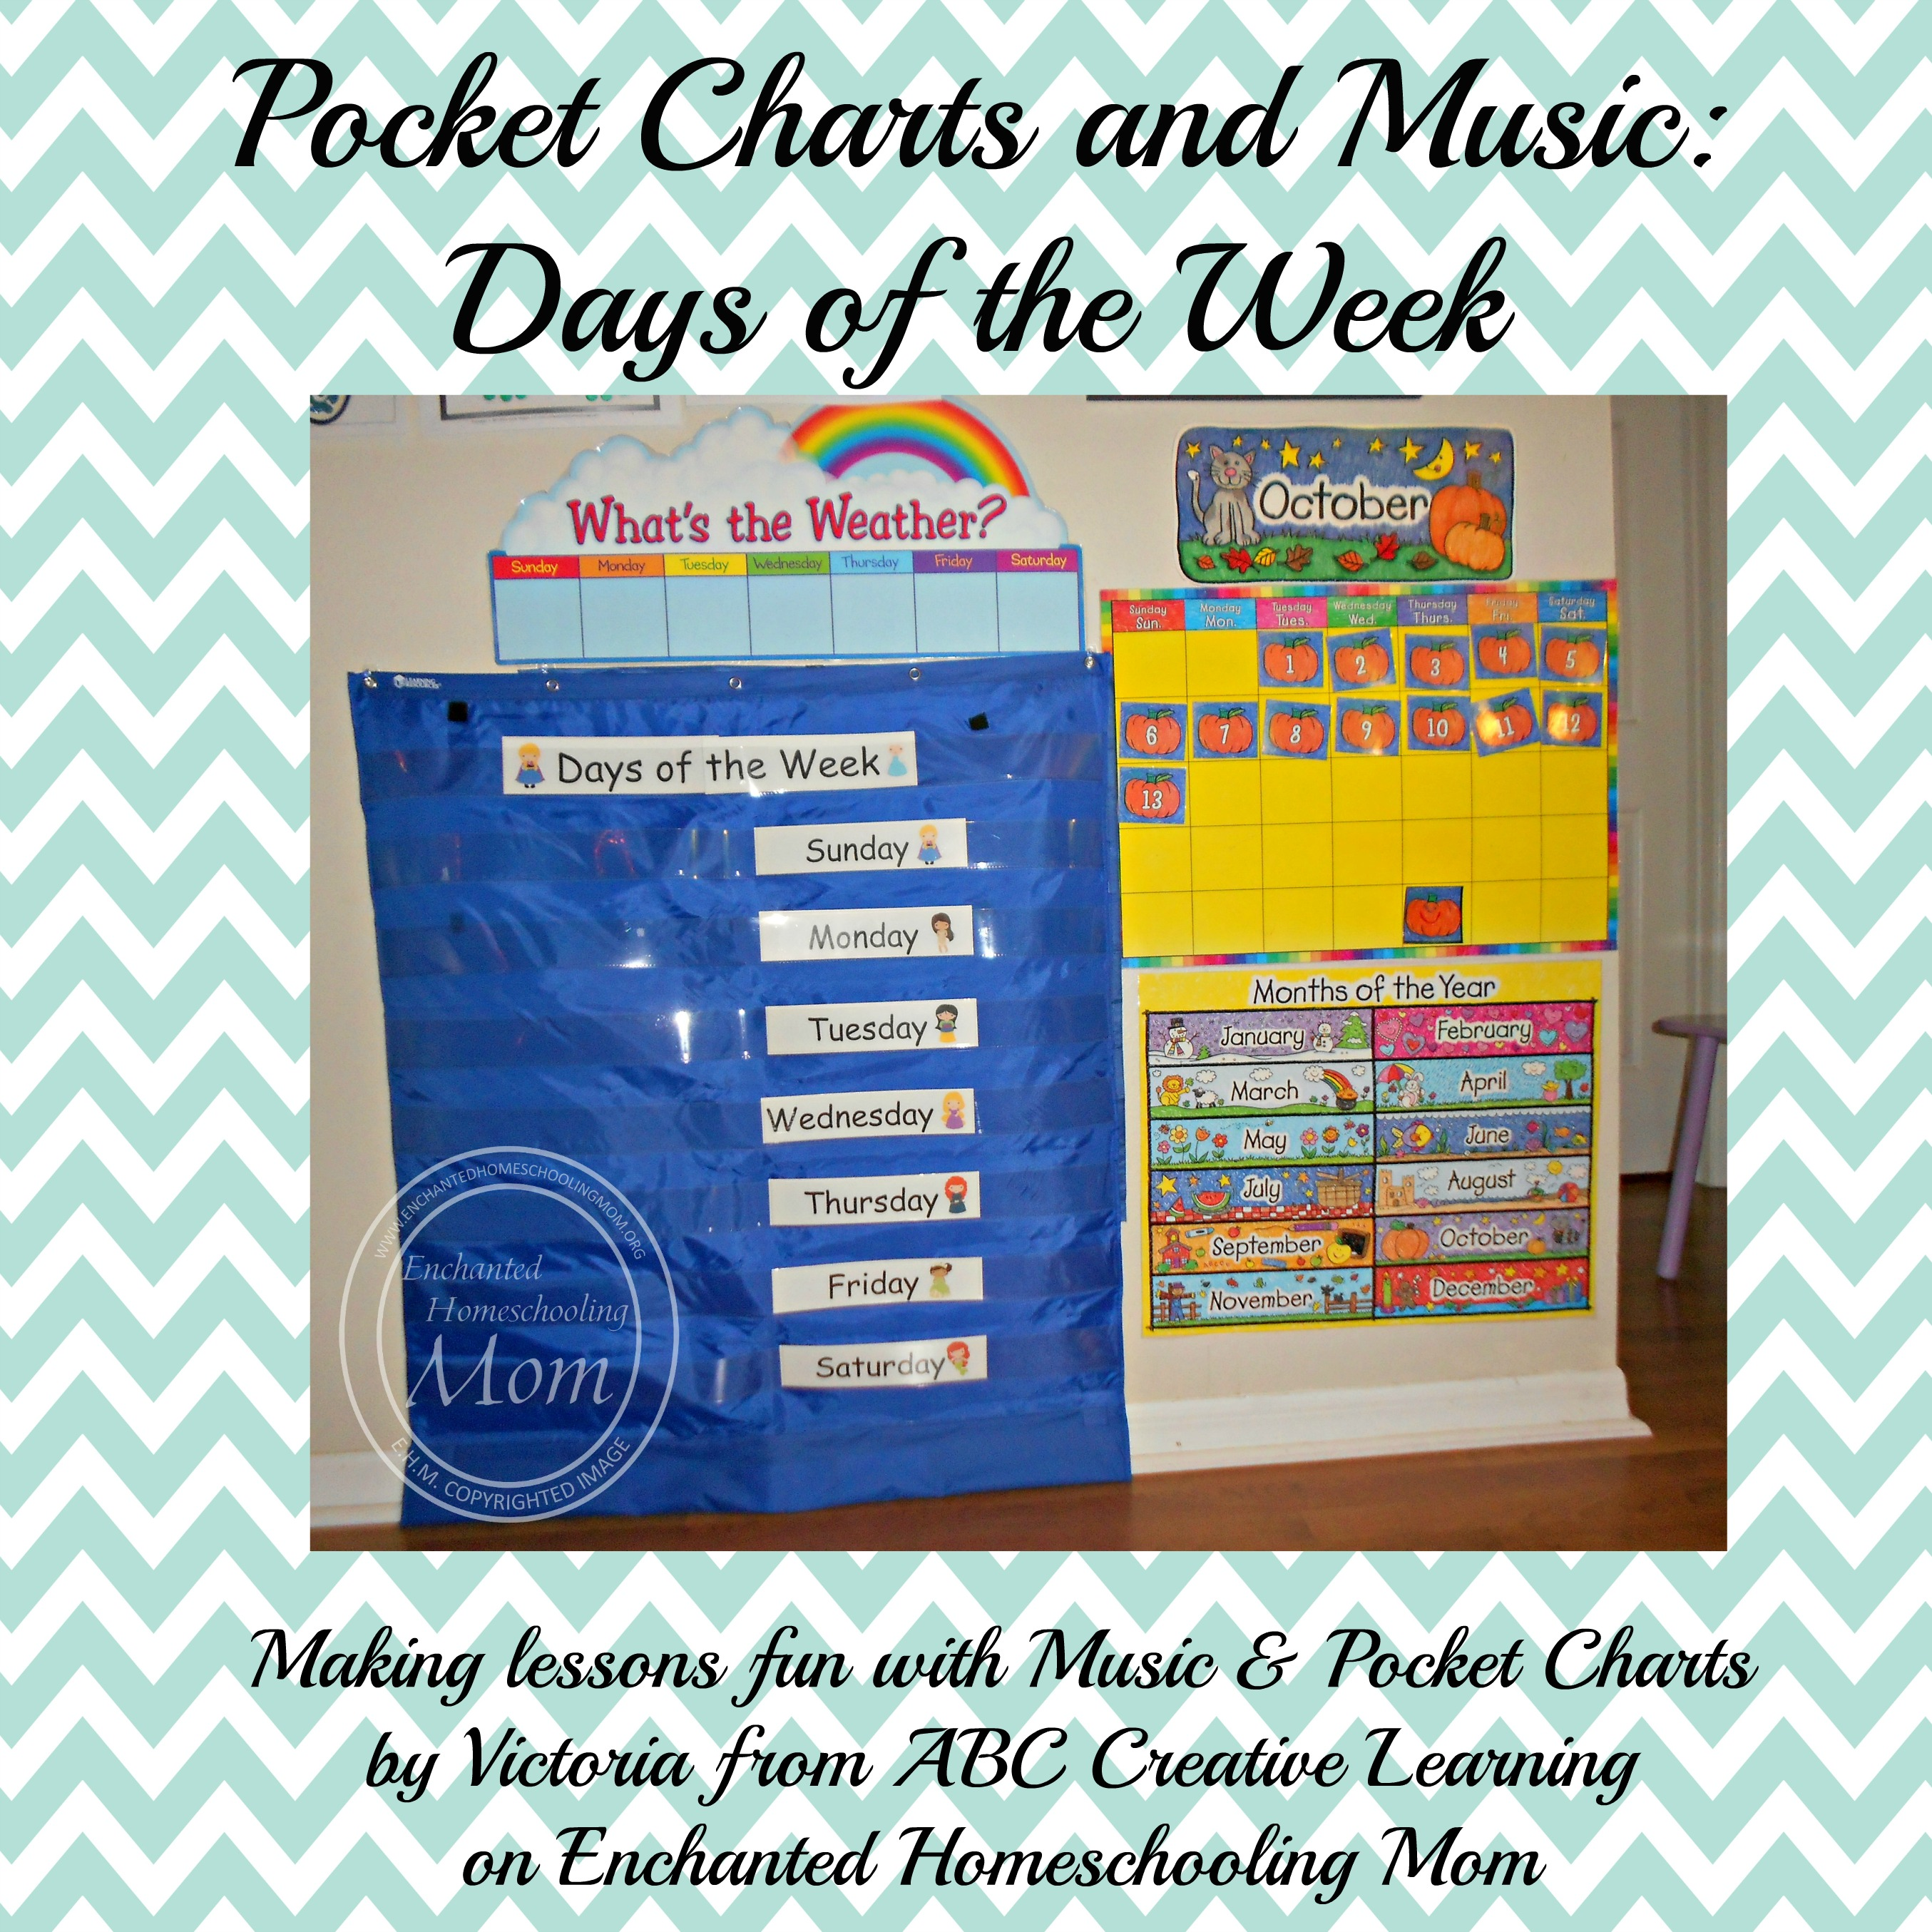 Pocket Charts and Music: Days of the Week